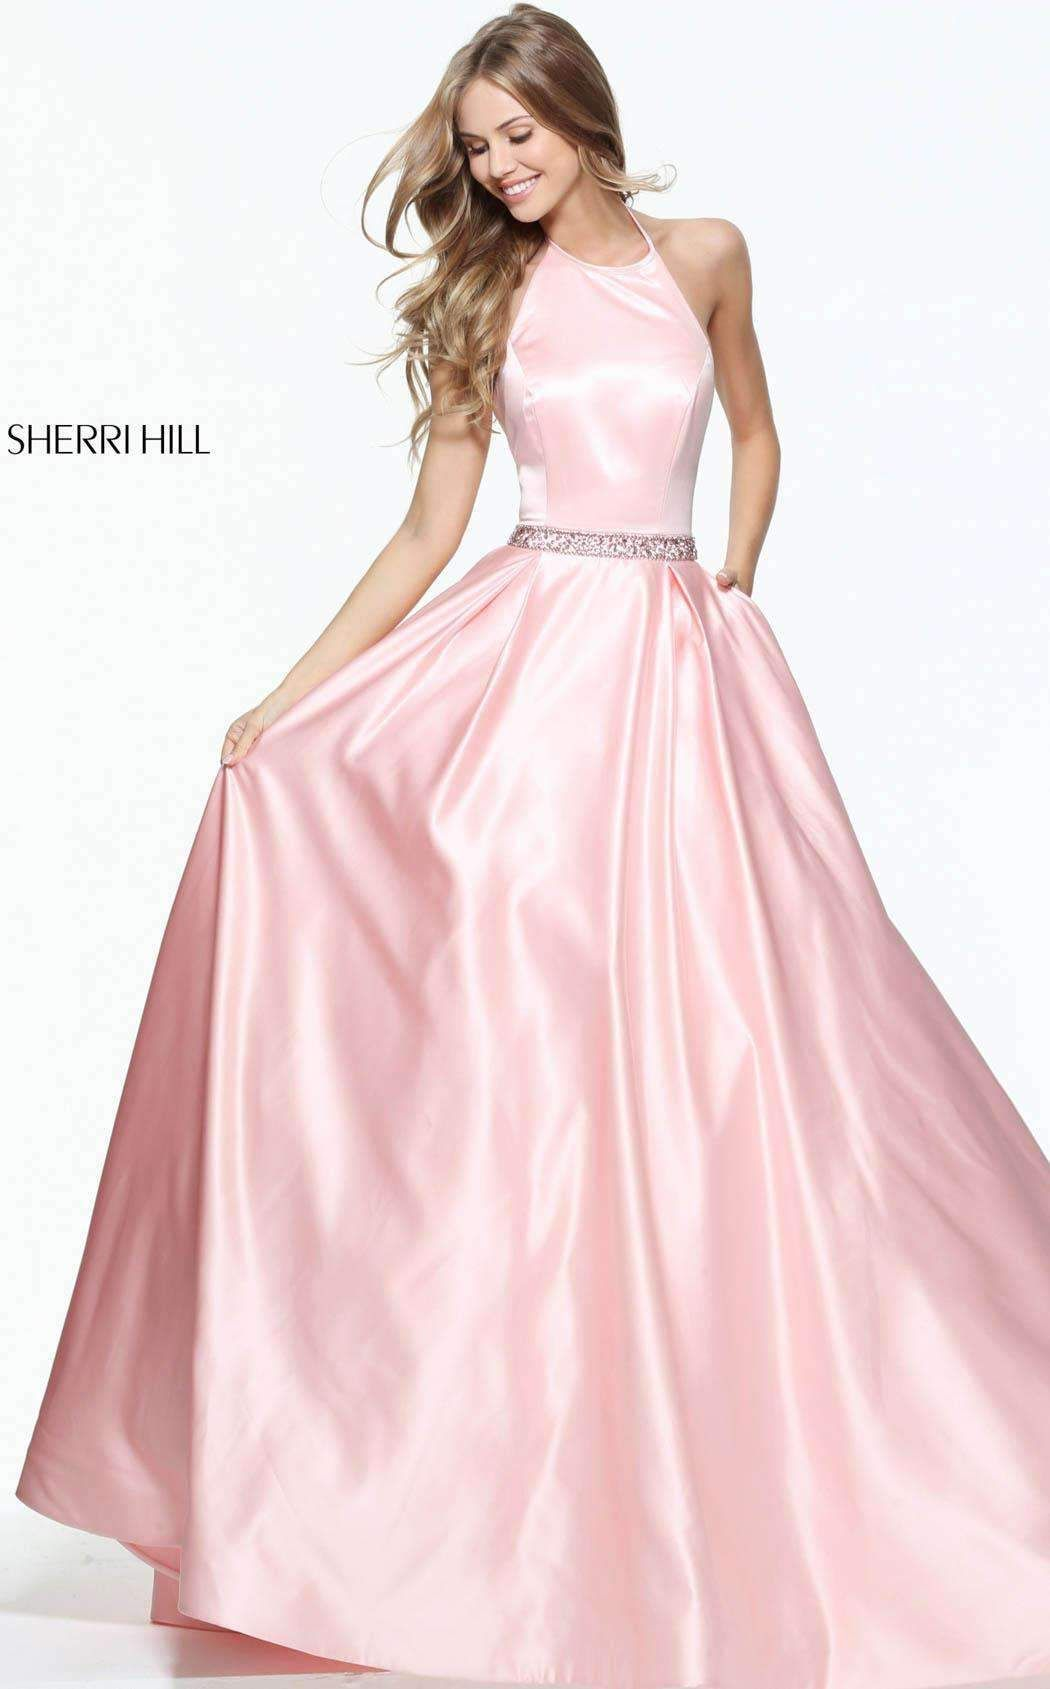 5977927f89a Sherri Hill 51036. Sherri Hill 51036 Blush Prom Dress